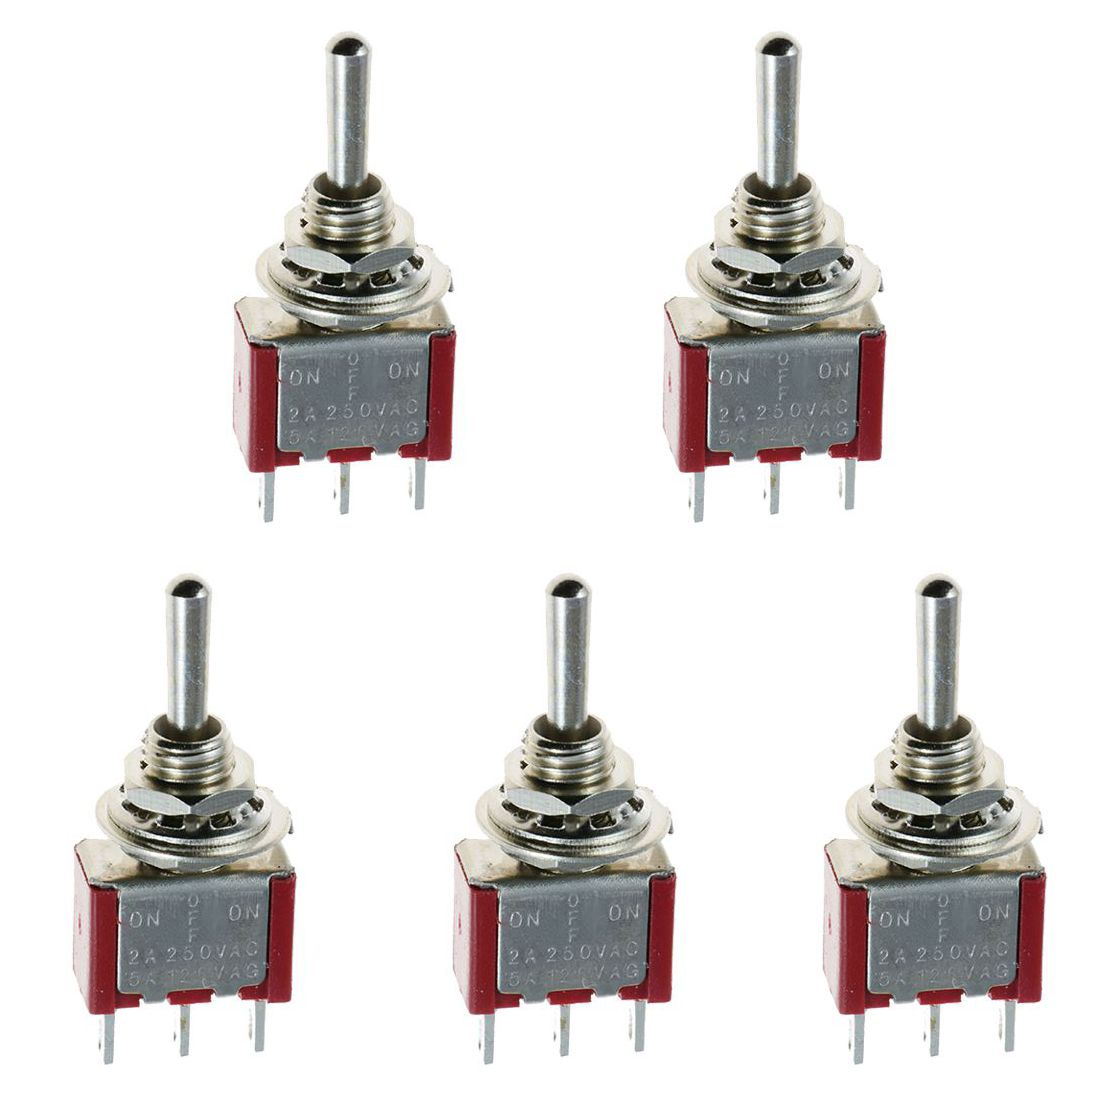 New 5 X Mini Momentary (On)Off(On) Toggle Switch Model Railway SPDT 12V,silver